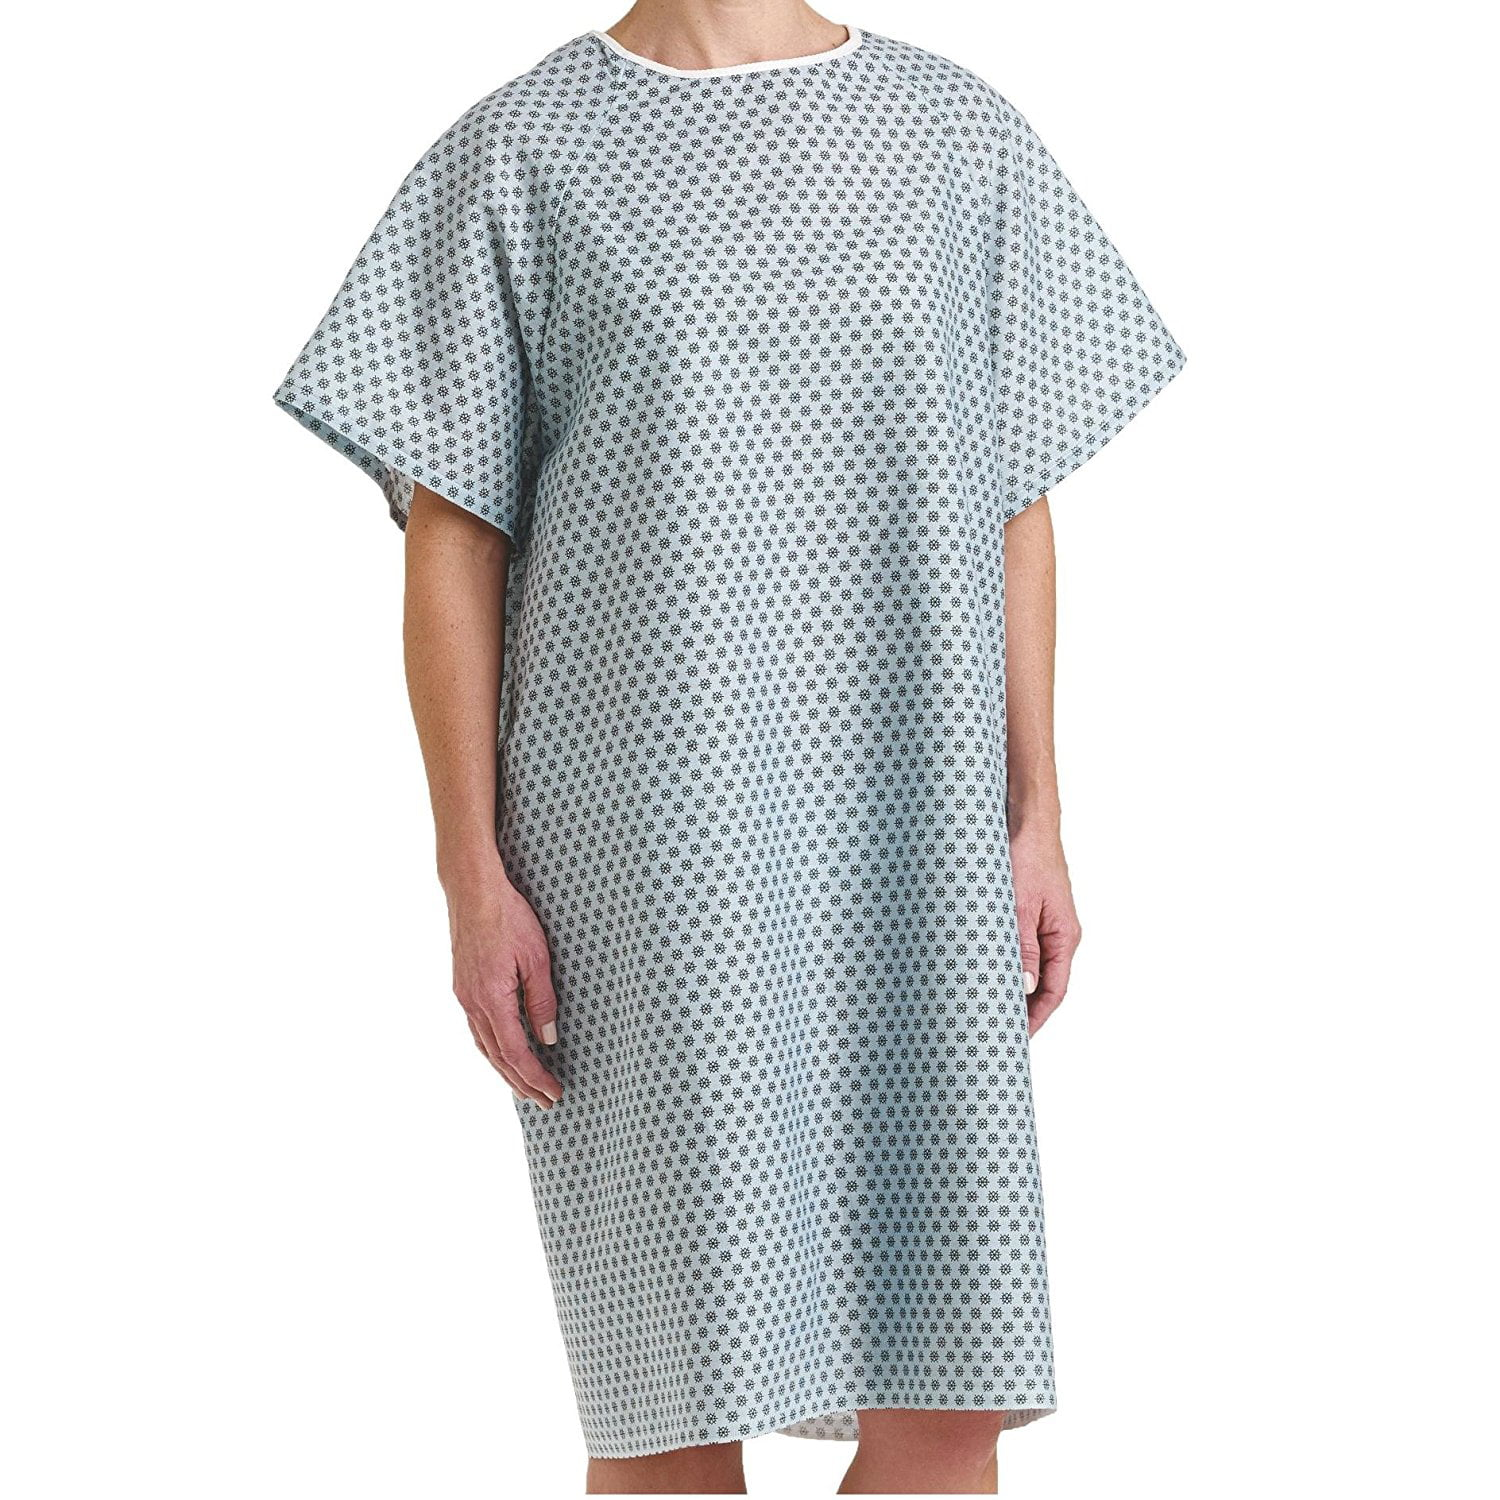 Deluxe Patient Hospital Gown, Easy Care, Soft & Comfortable GOWNS ...